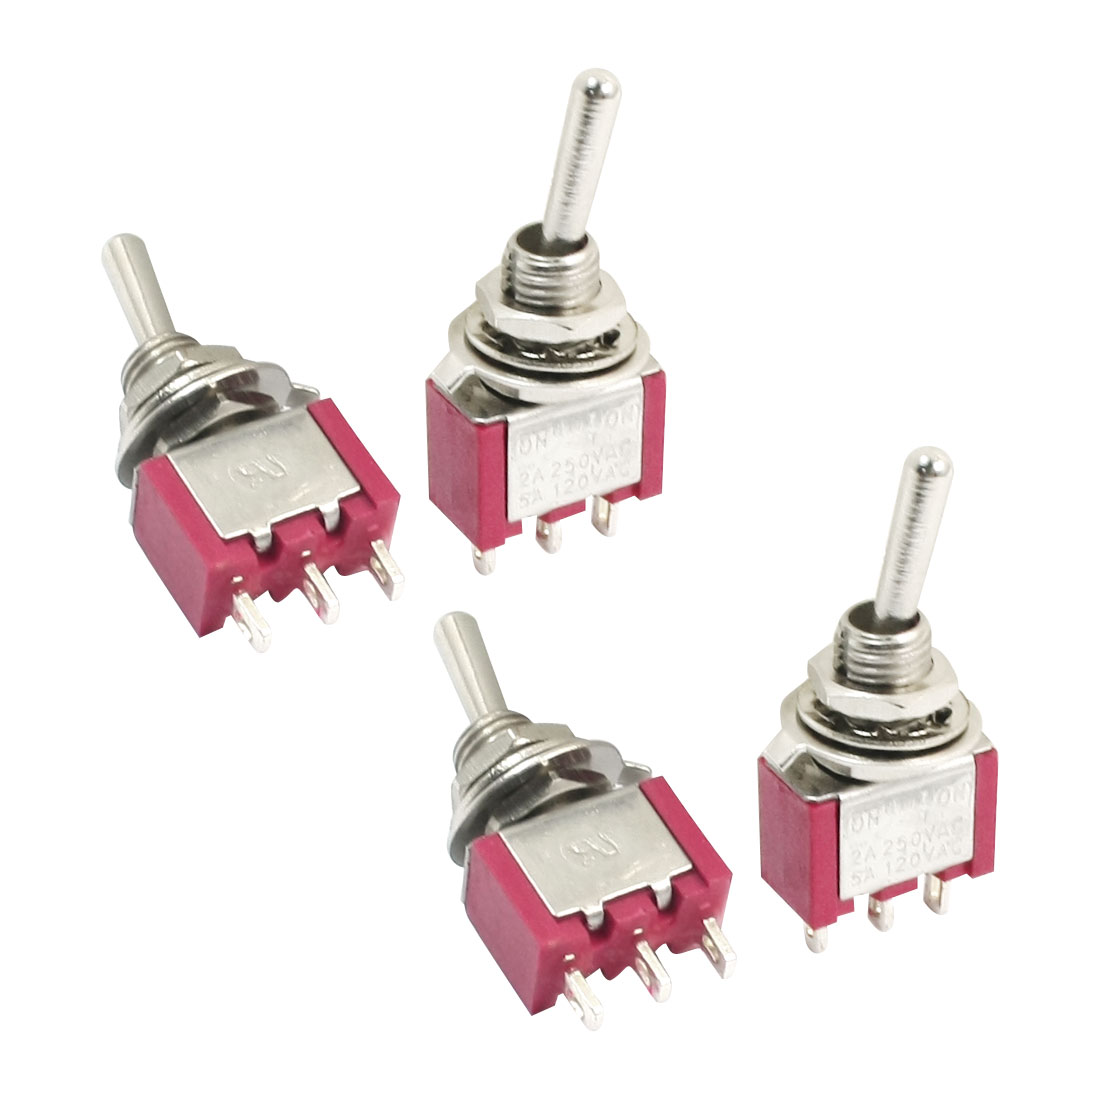 Panel Mount SPDT ON-OFF-ON 3 Position Locking Toggle Switch AC 120V 5A Red 4pcs